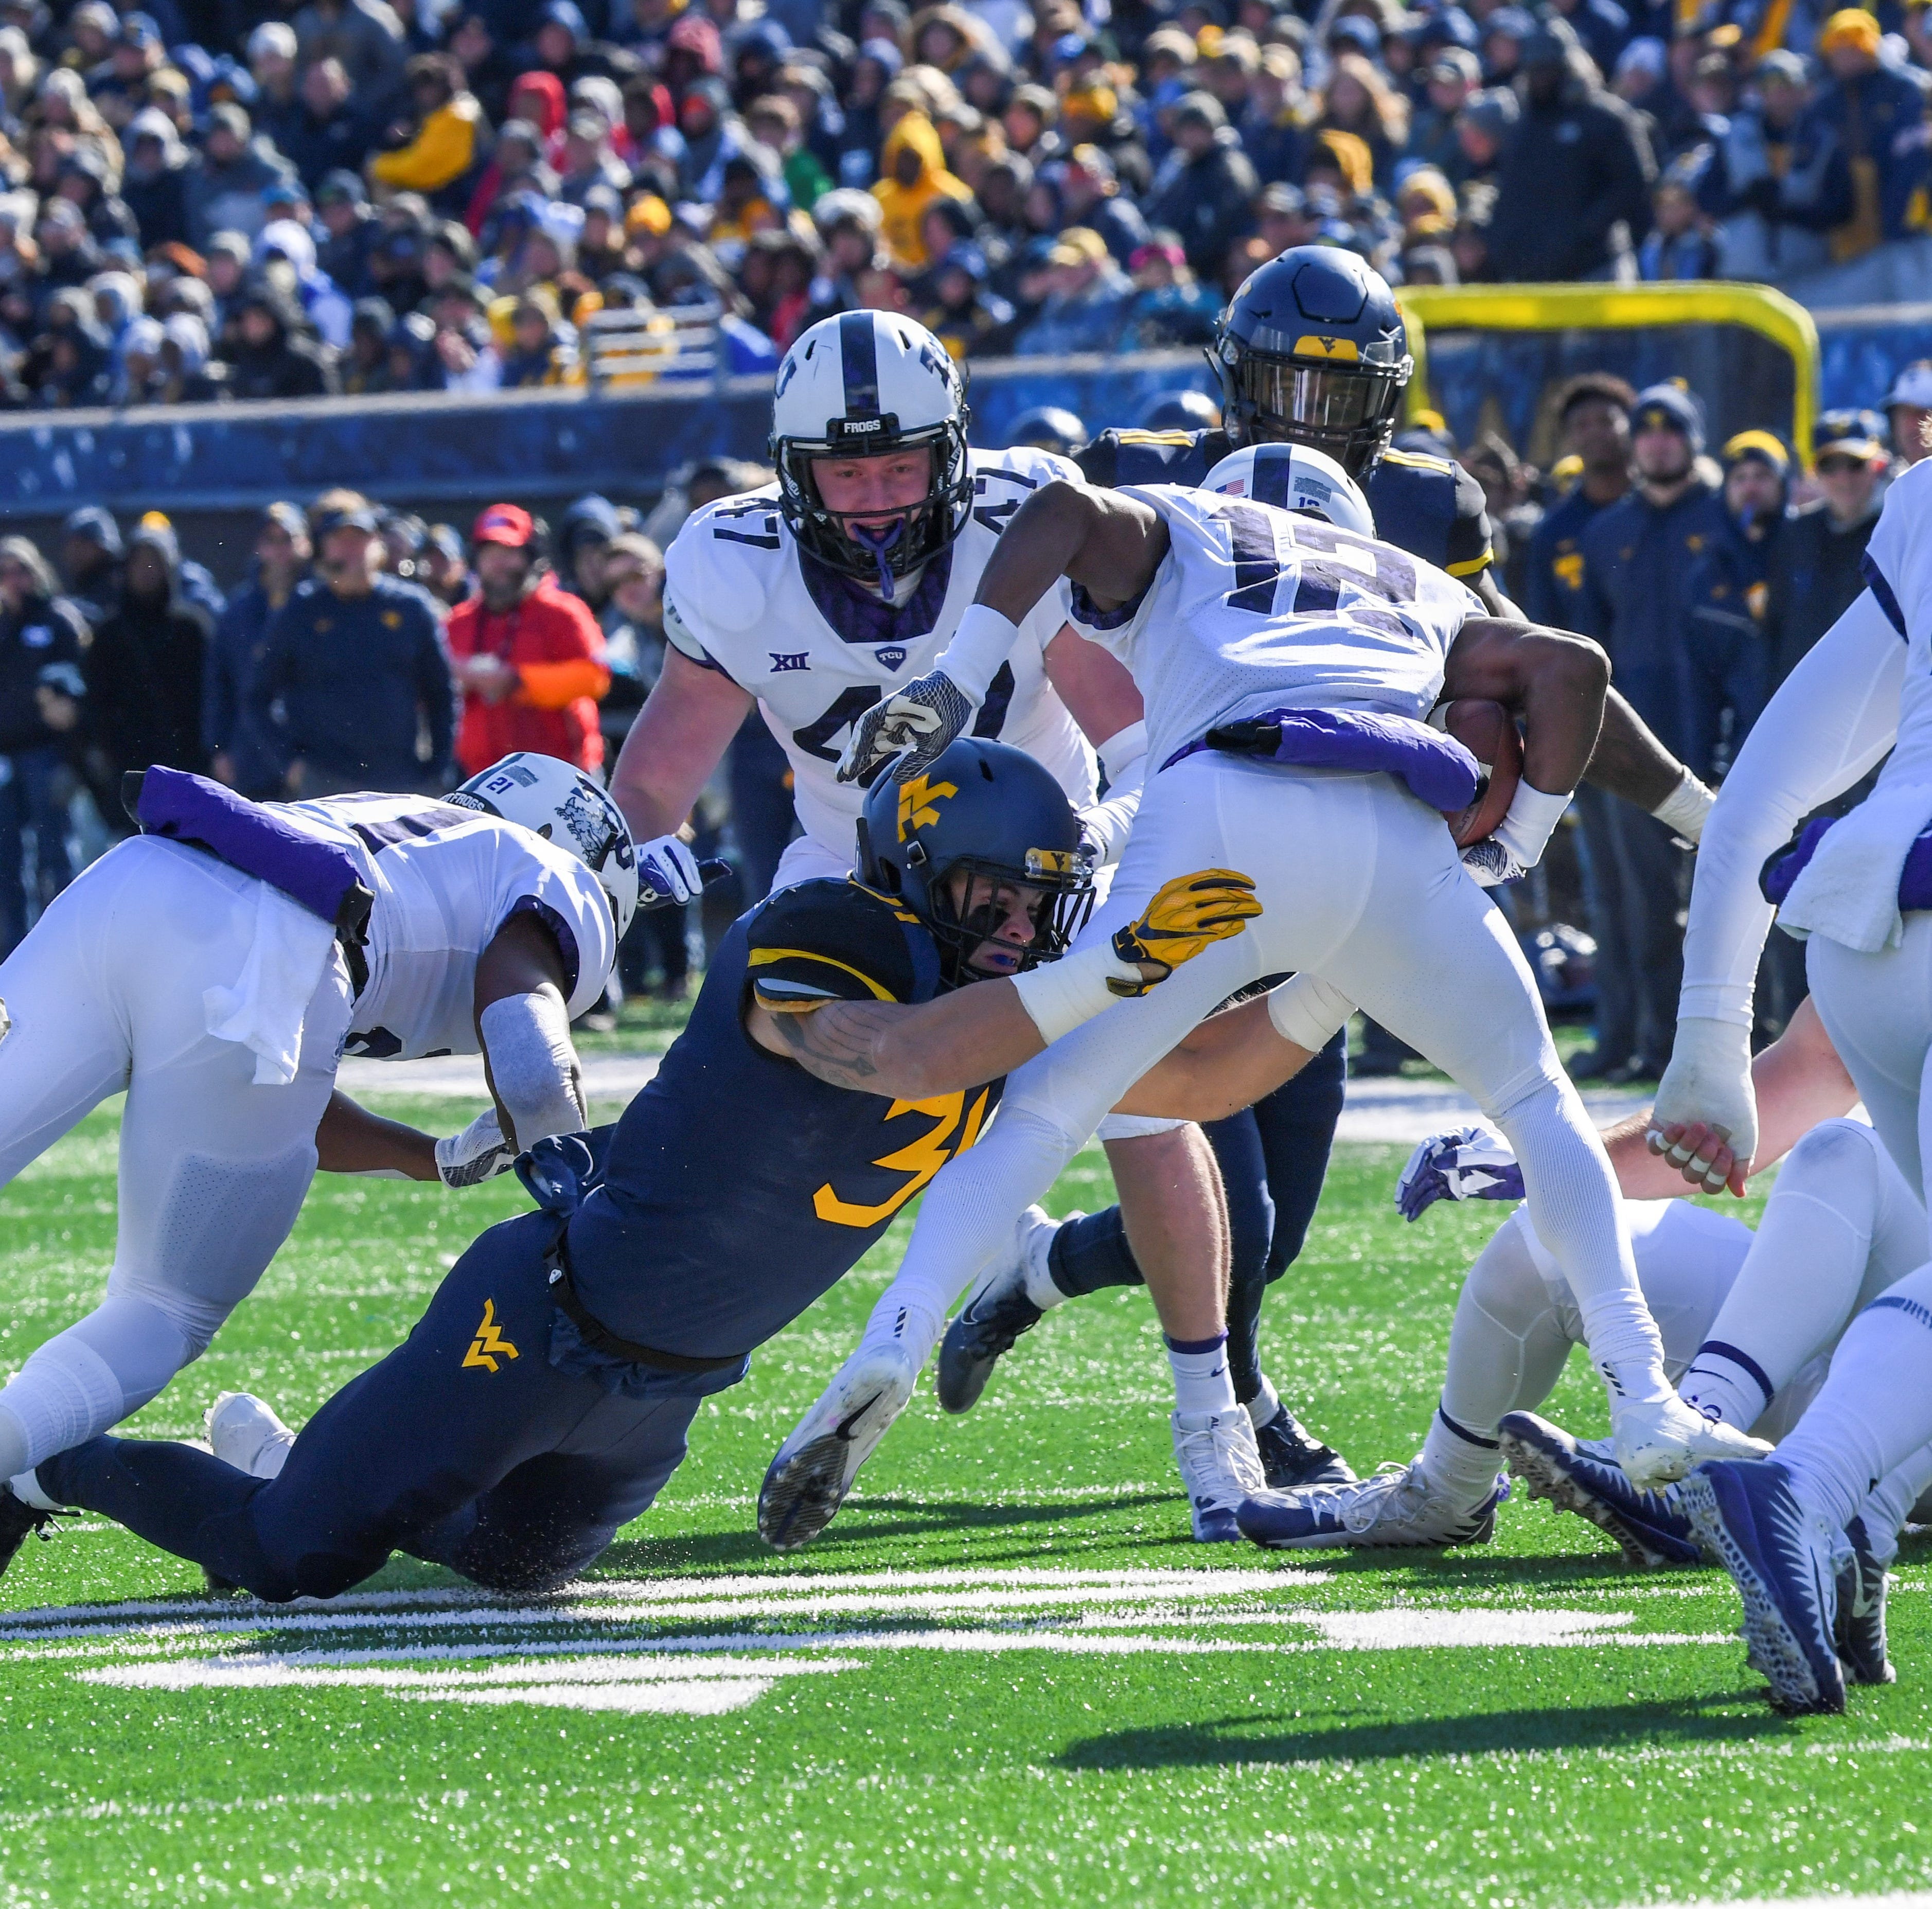 Woodville's Sandwisch heads to Camping World Bowl with Mountaineers